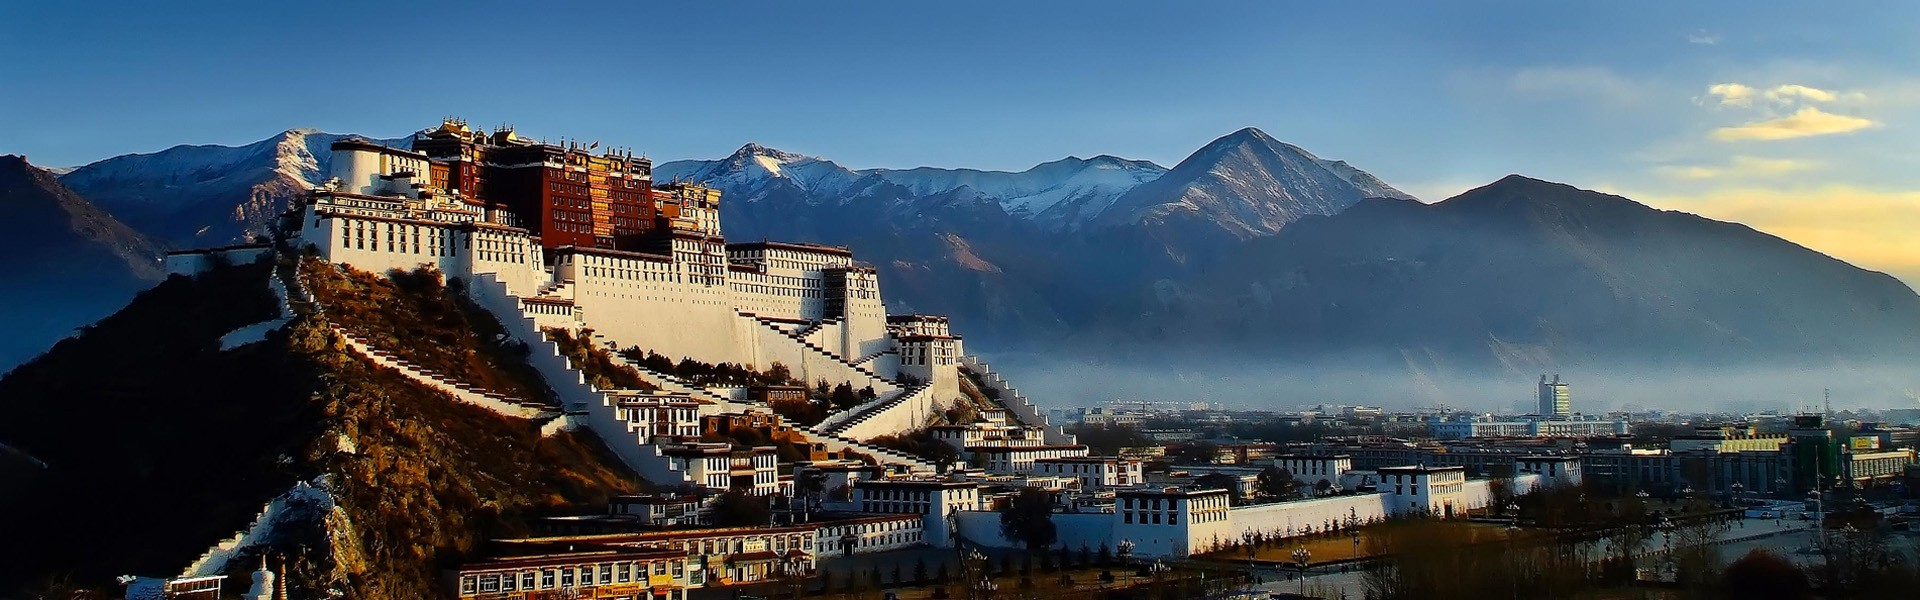 Tibet's majestic Potala Palace in the capital city of Lhasa